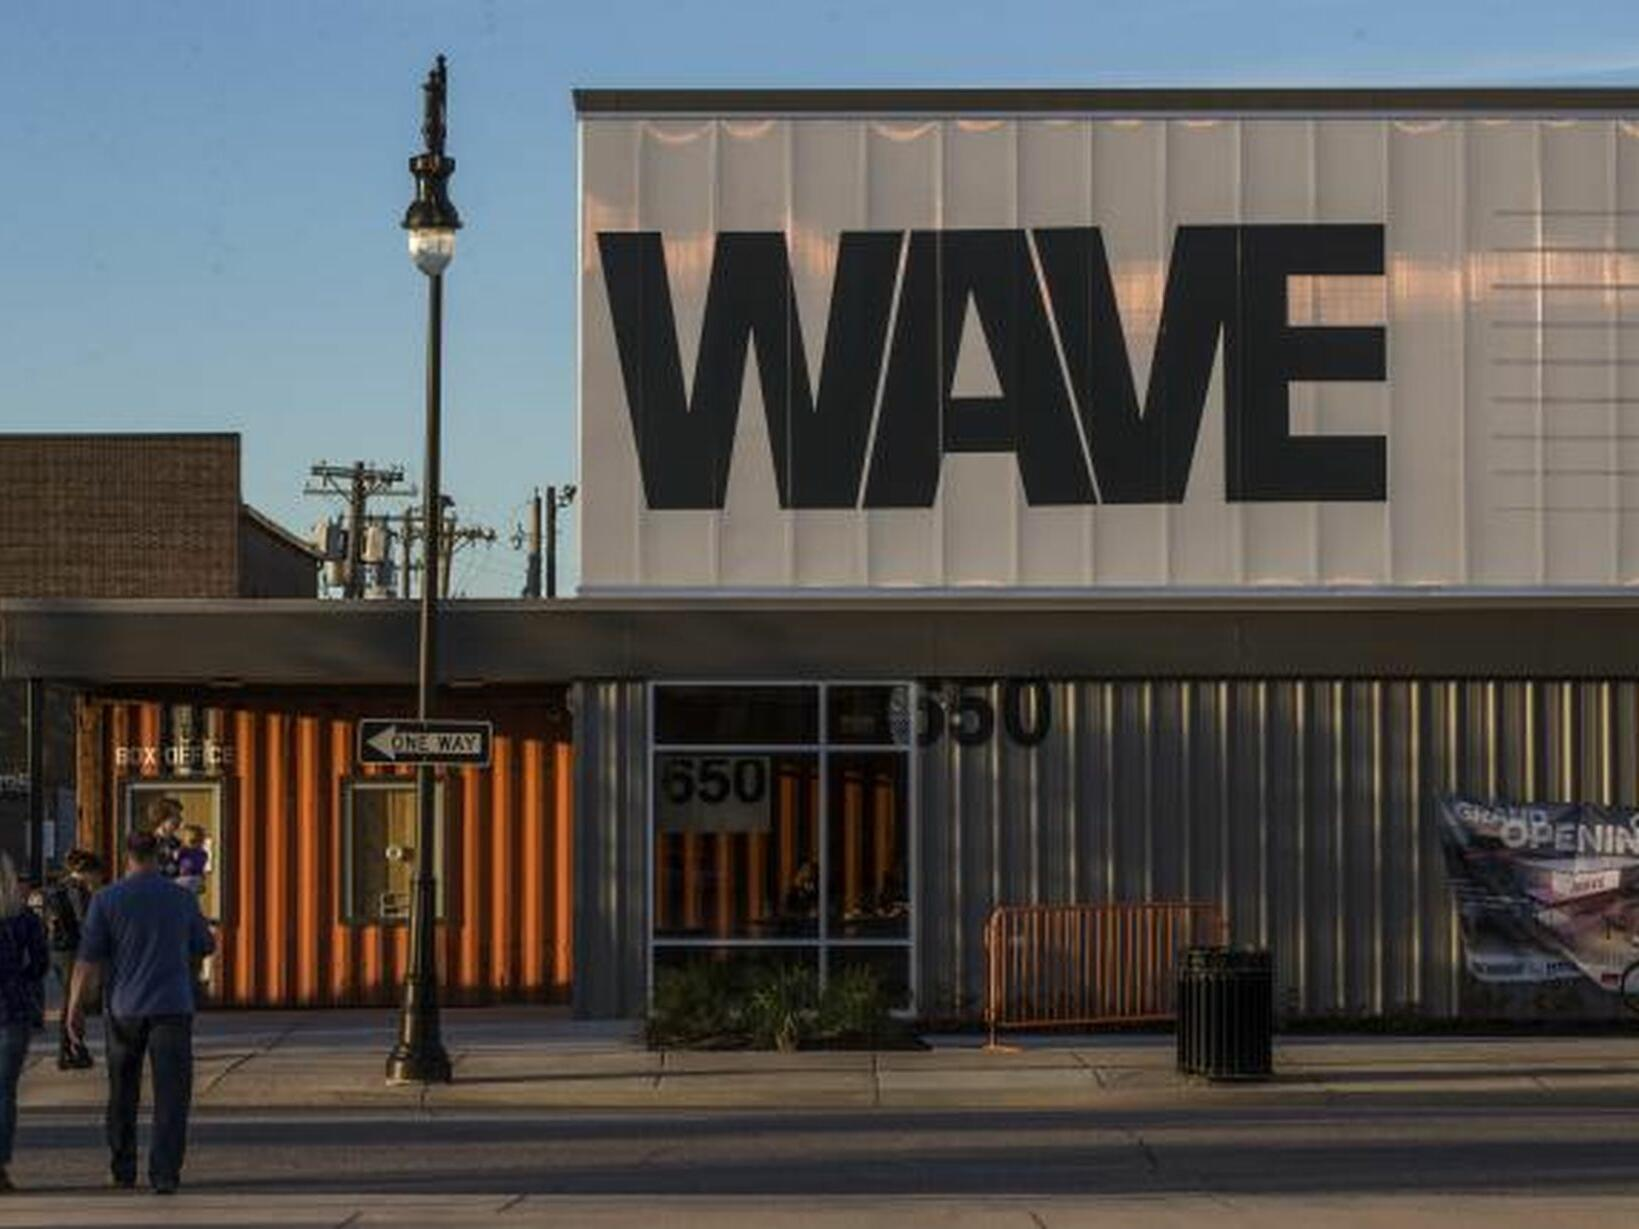 Exterior view of The Wave near Hotel at Old Town